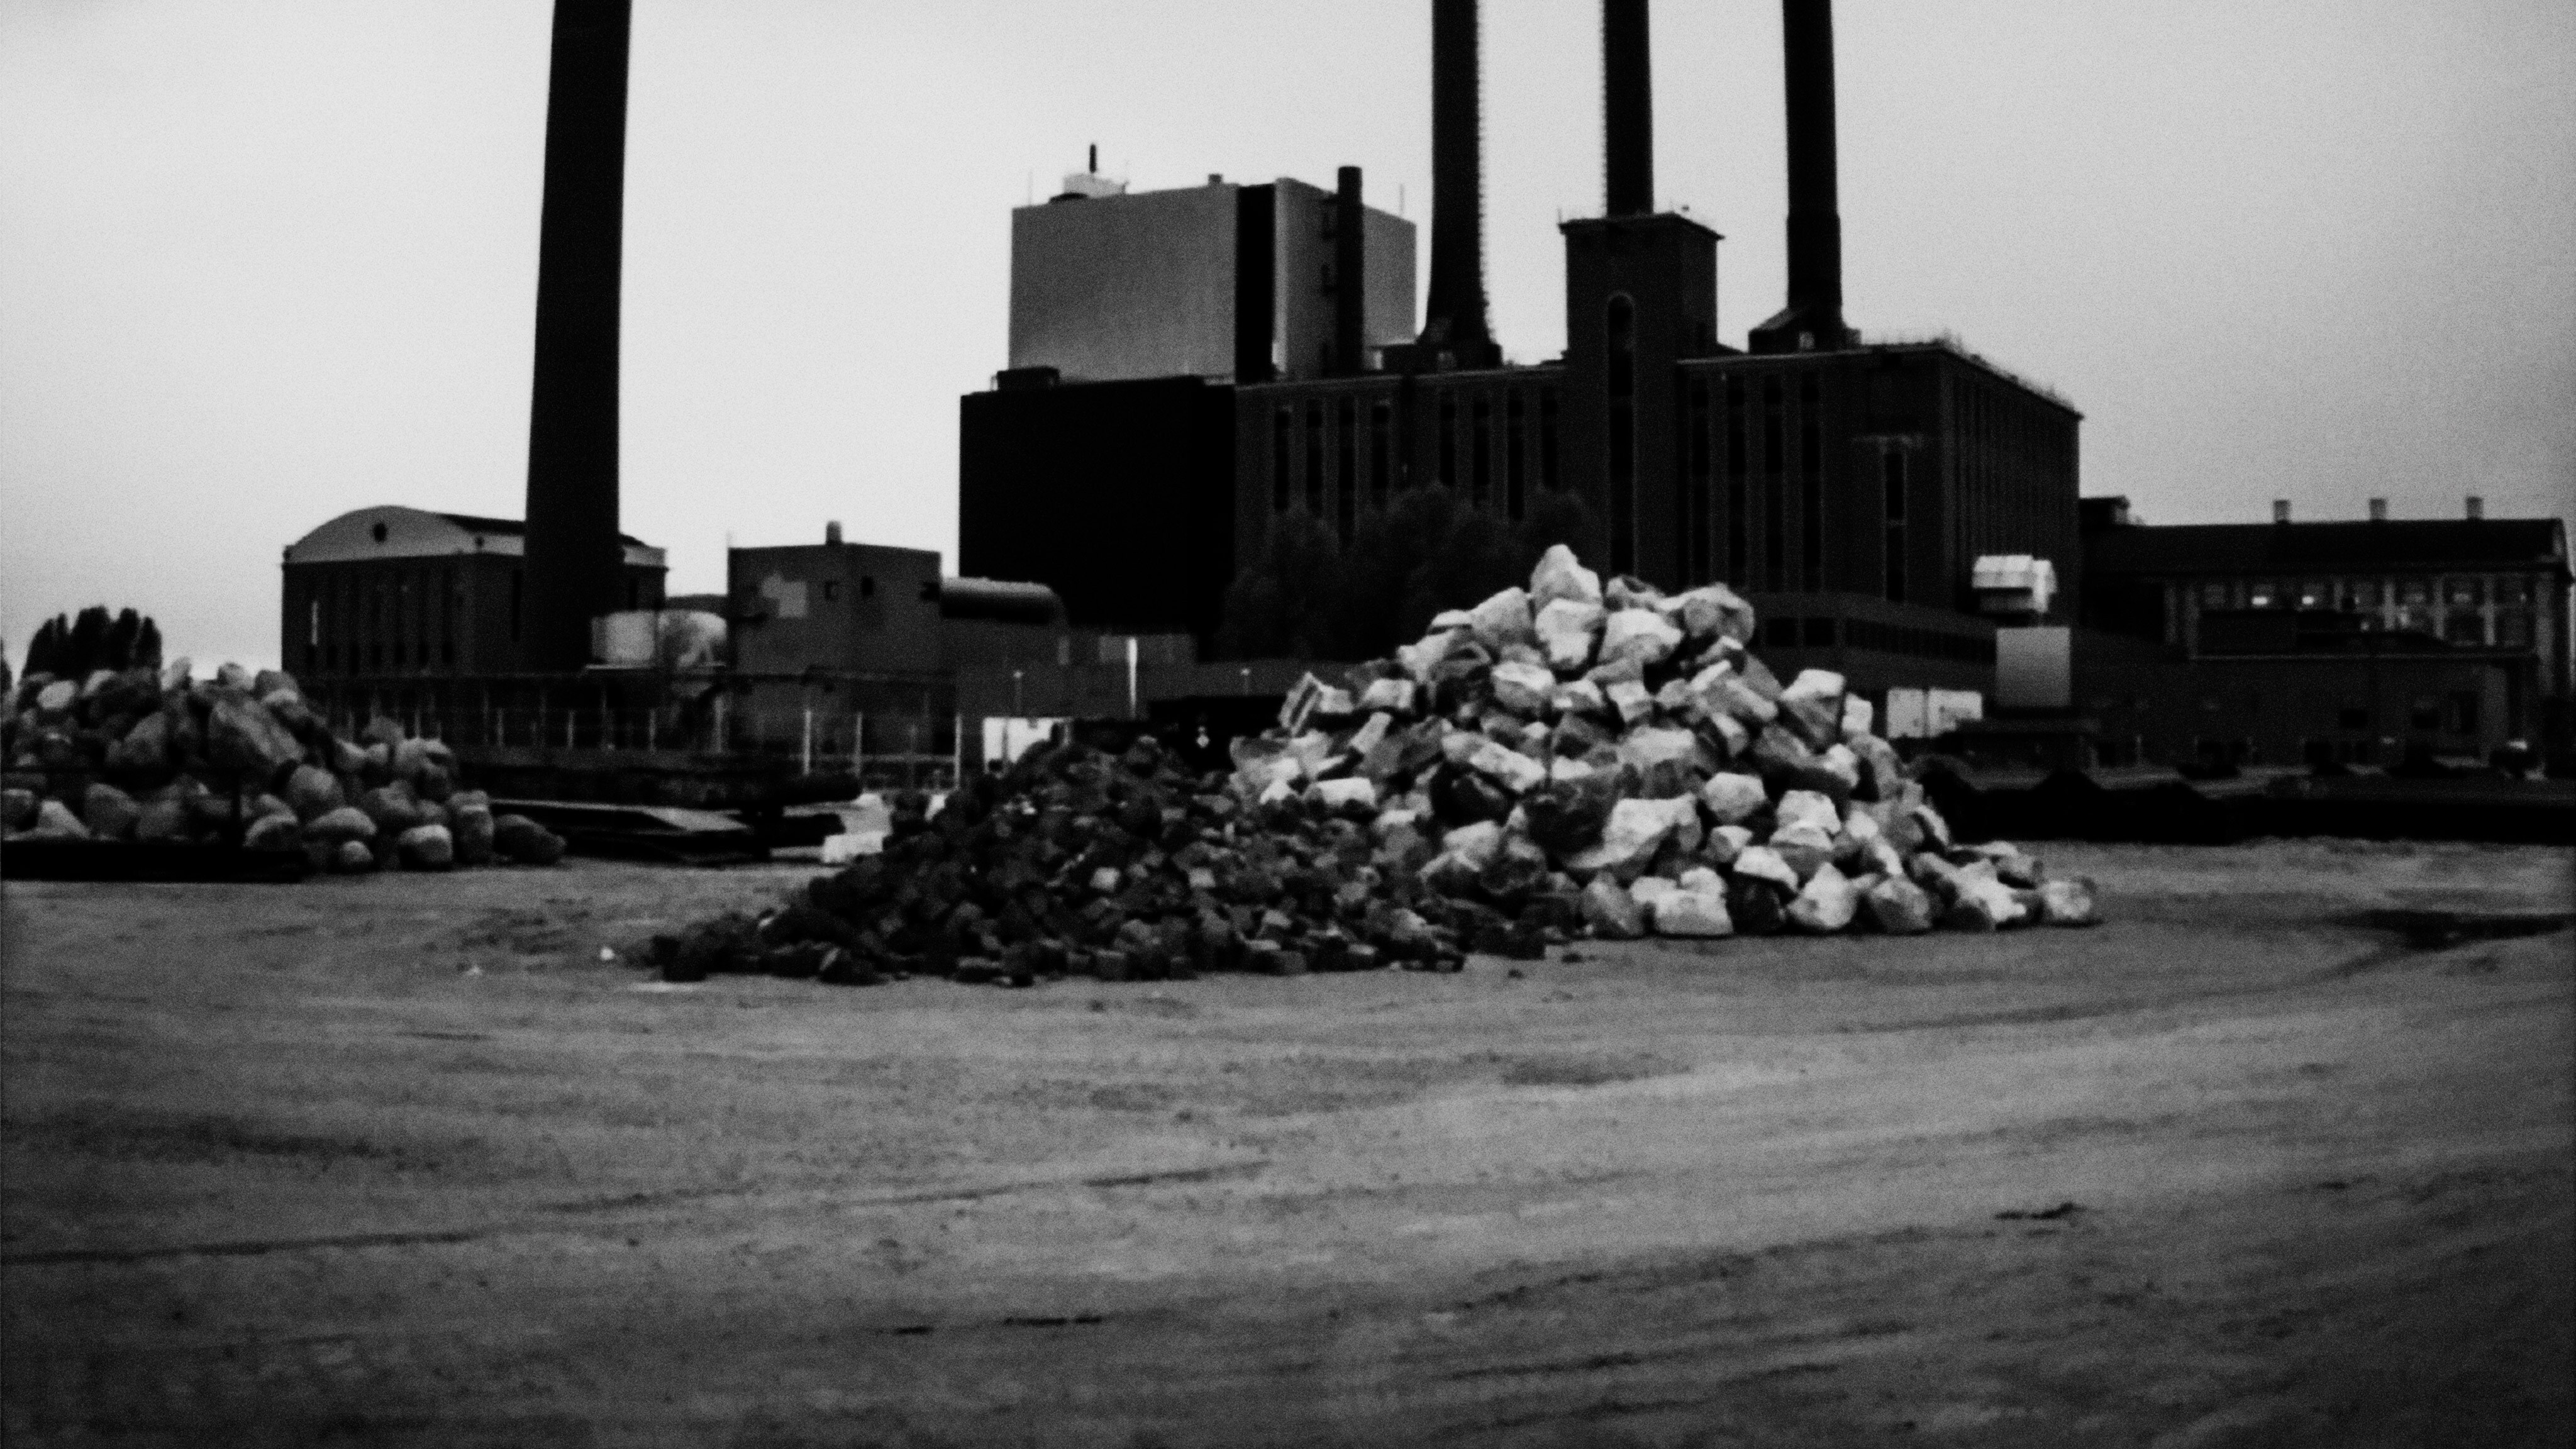 Pile of stones in front of industry building